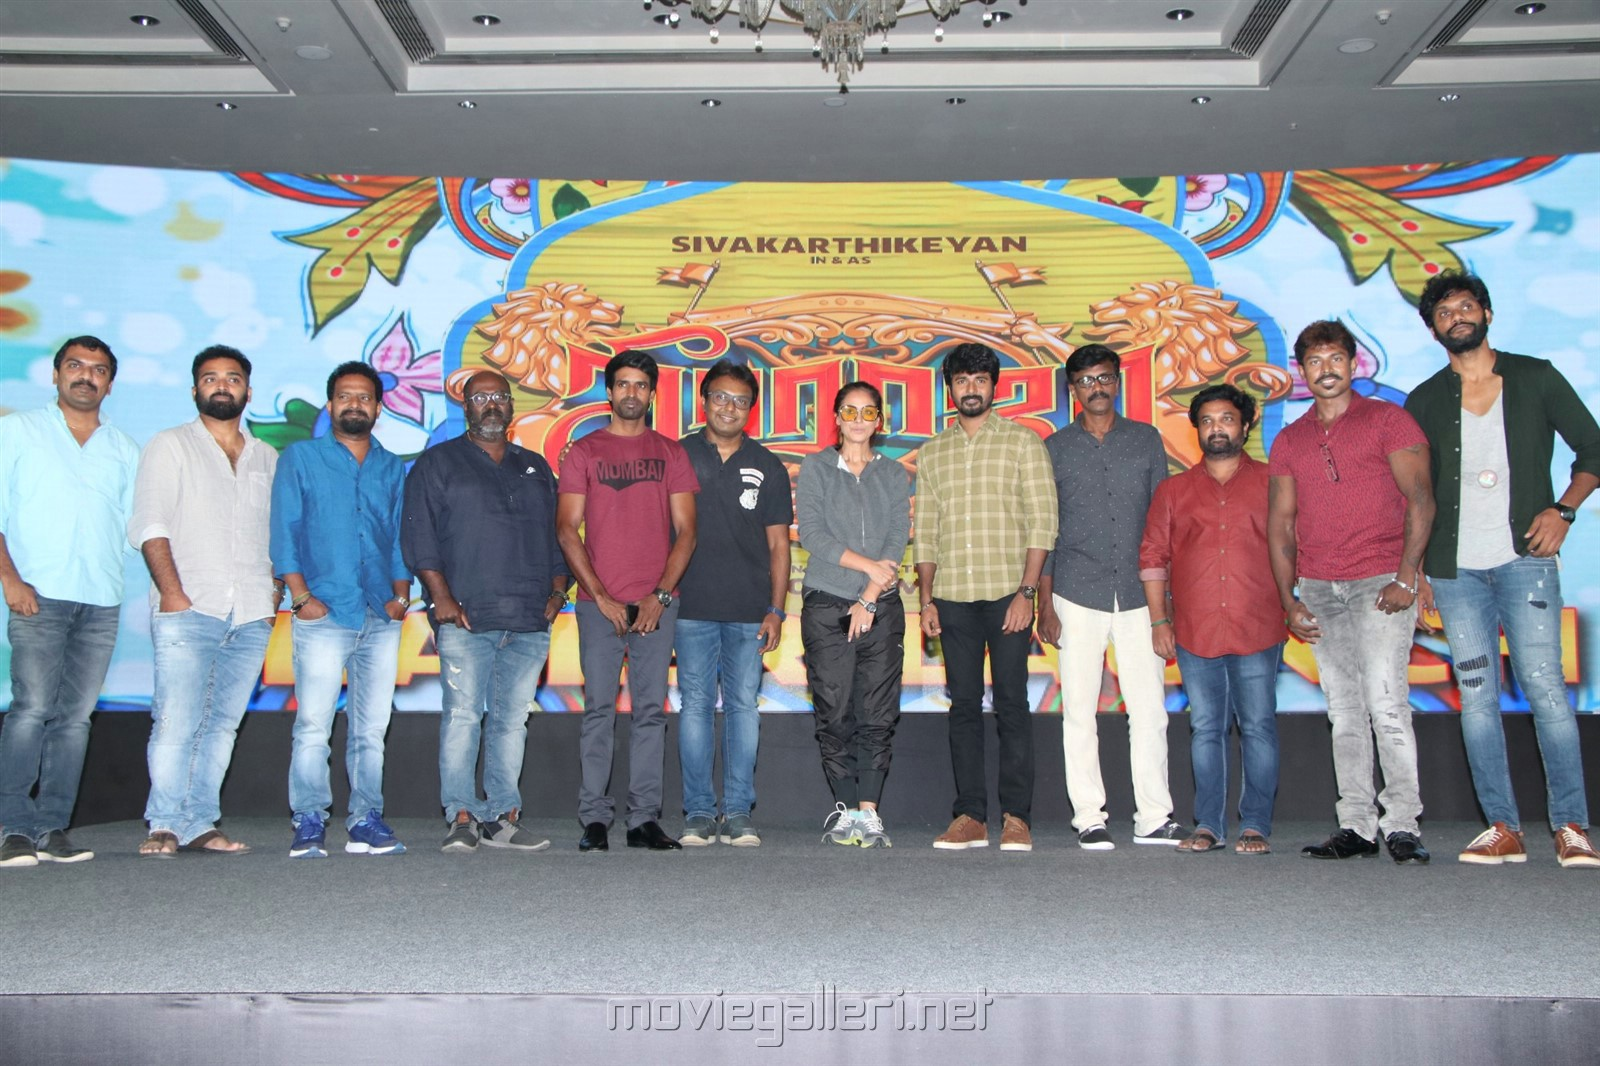 Seema Raja Trailer launched at grand ambience of lights and music